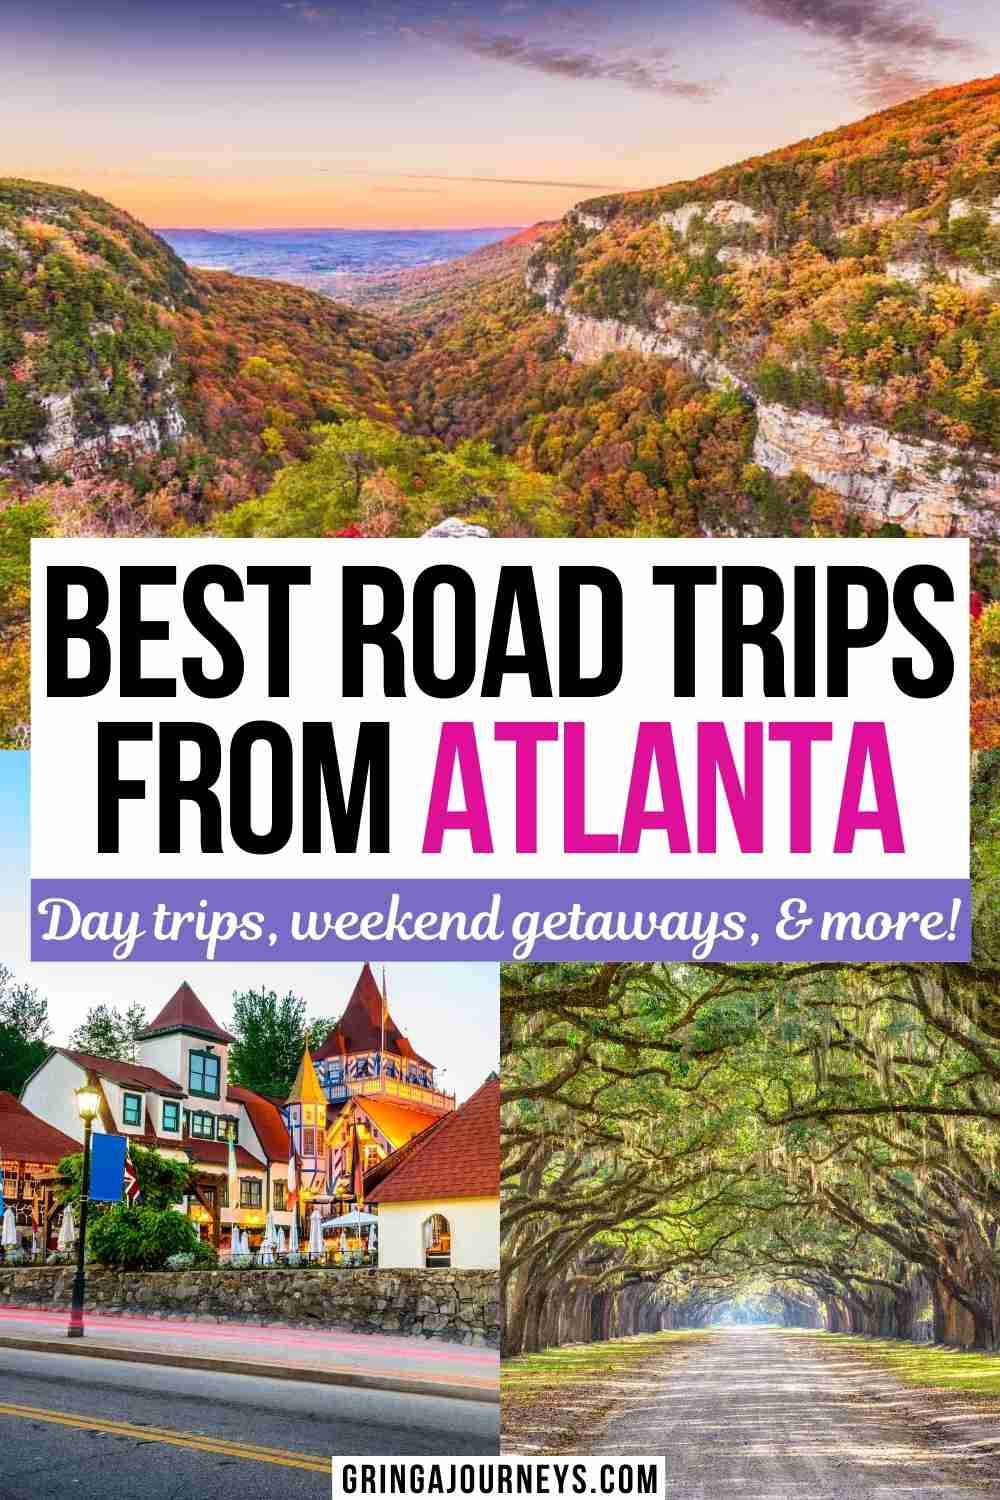 Explore the 27 best road trips from Atlanta, GA, including day trips, weekend getaways, and other top driving vacations from Atlanta.